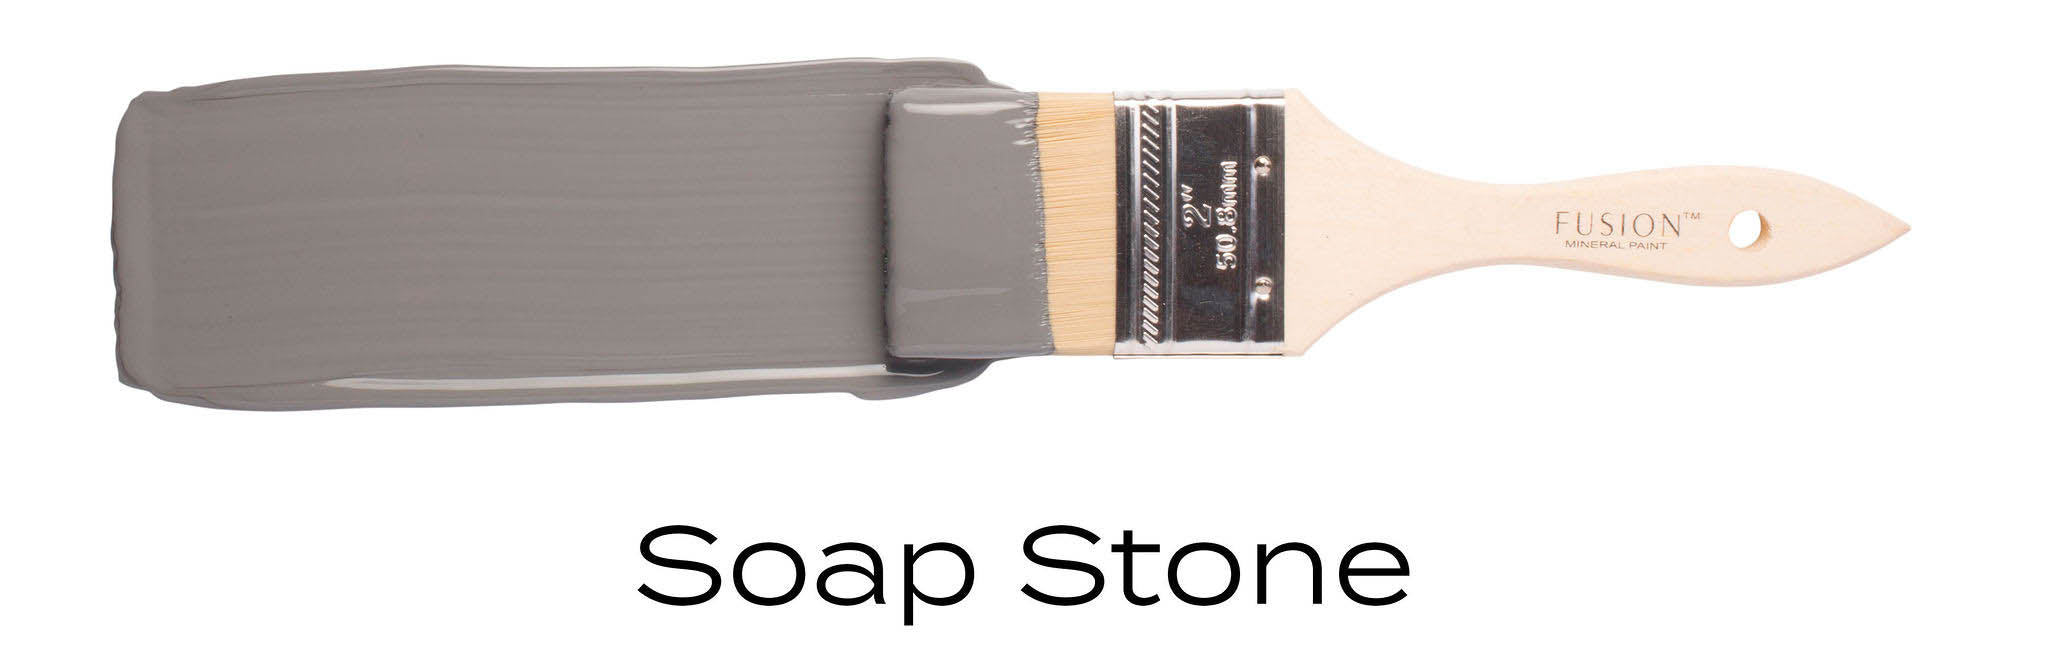 Soap Stone Fusion Mineral Paint Furniture Paint Colour Example, No Prep or top coat needed, UK Stockist